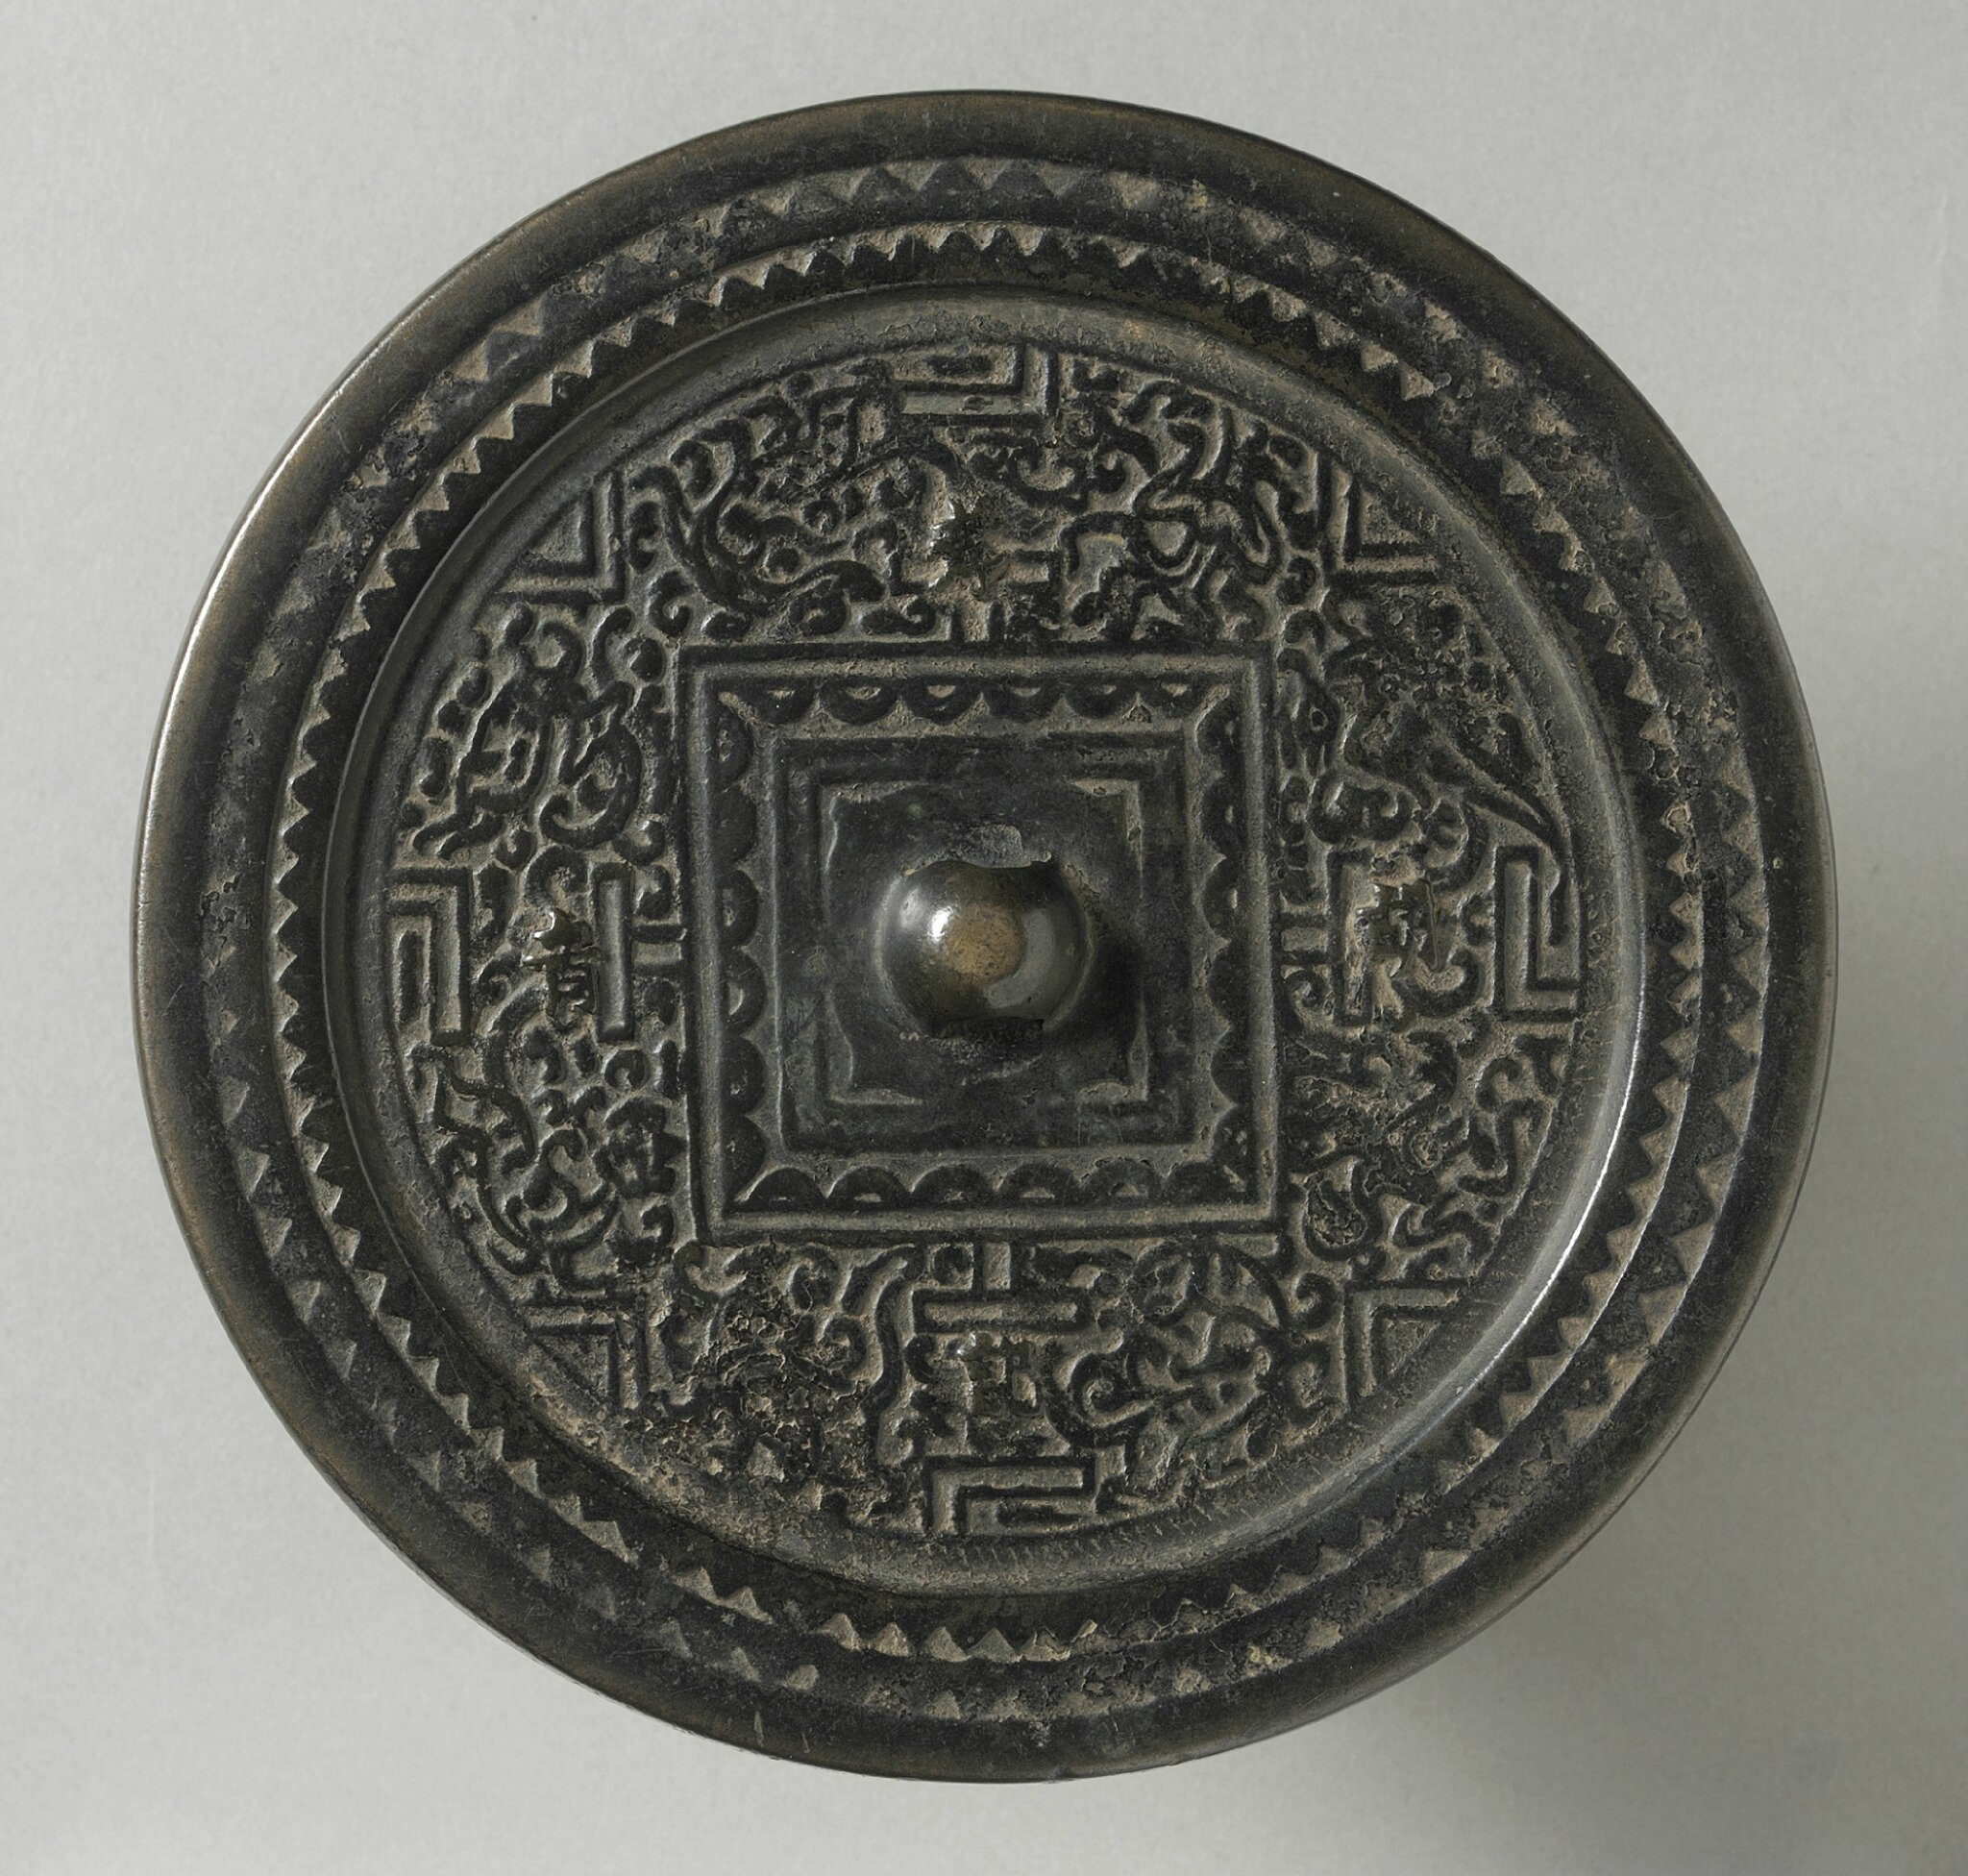 Mirror (Jing) with 'TLV' Design, China, Eastern Han dynasty, 25-220